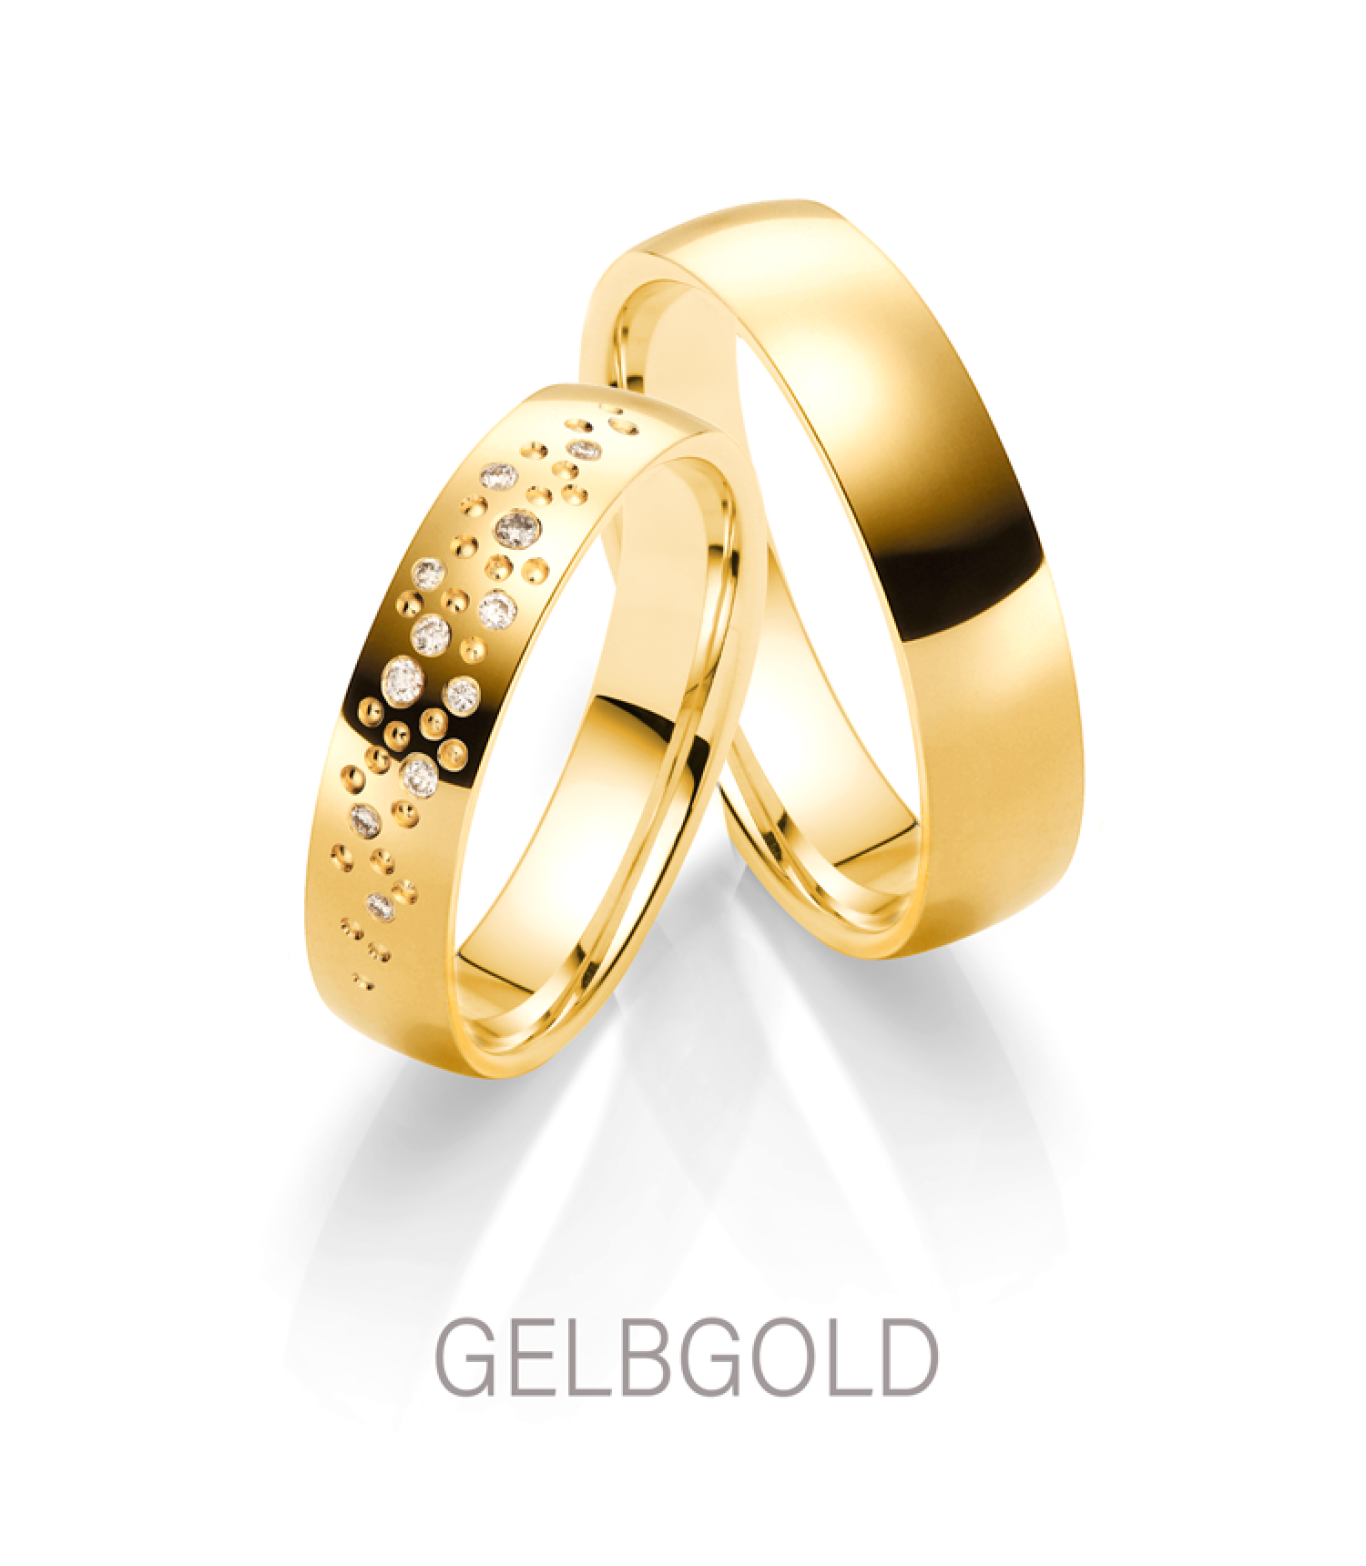 1_Gelbgold_New